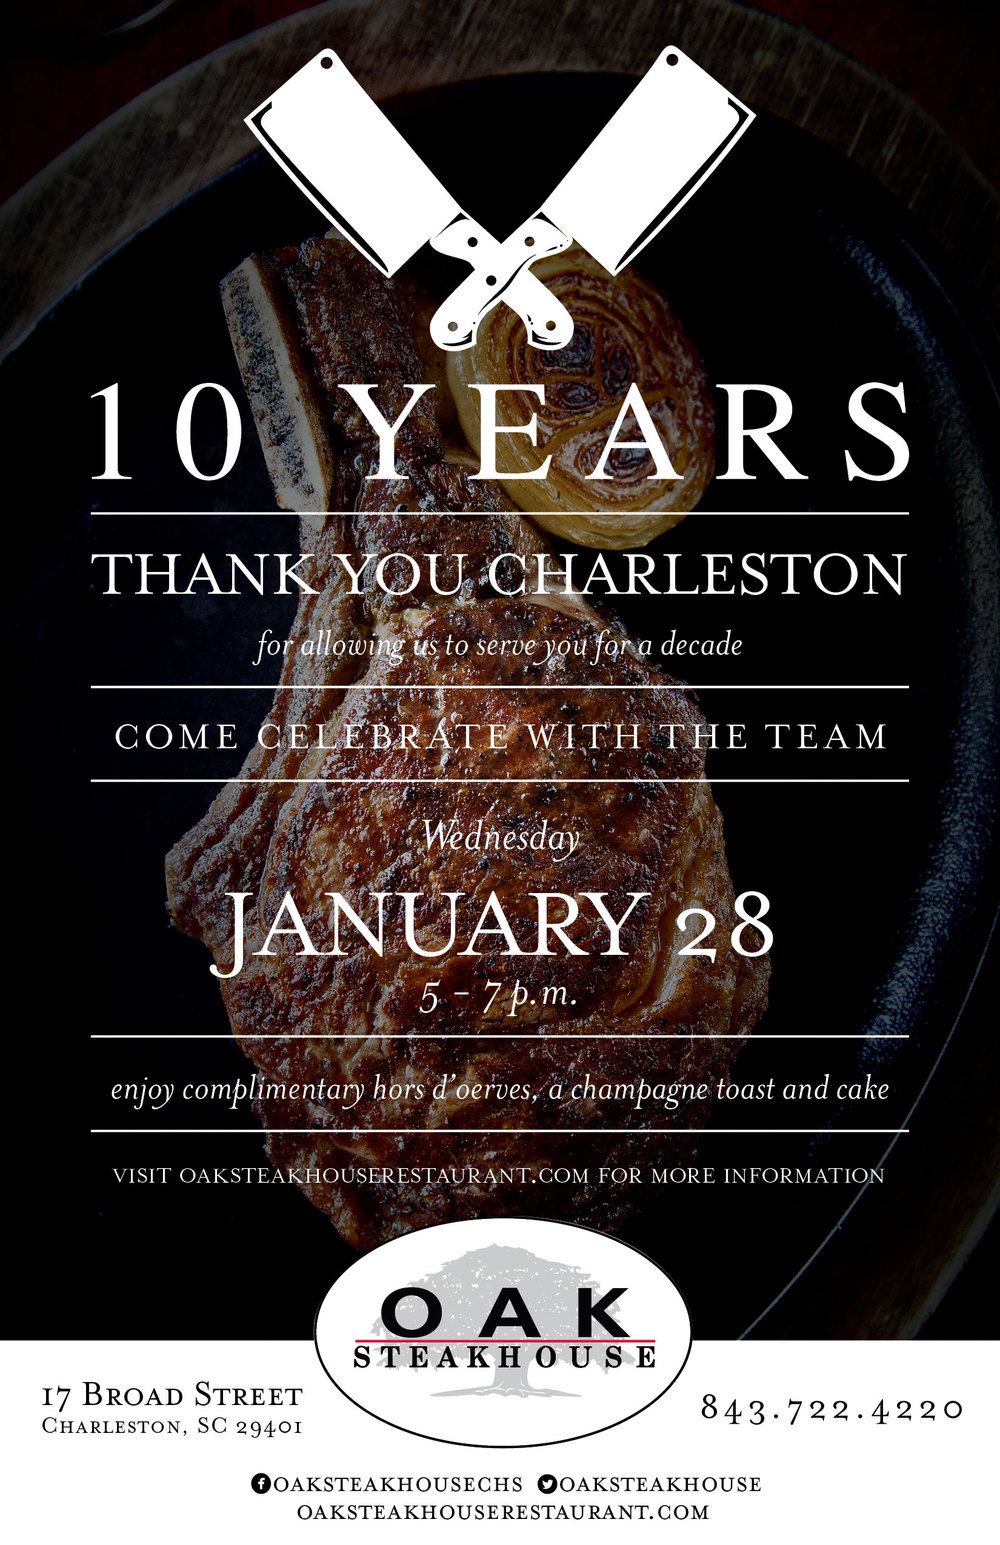 Event: Oak Steakhouse, Charleston, SC